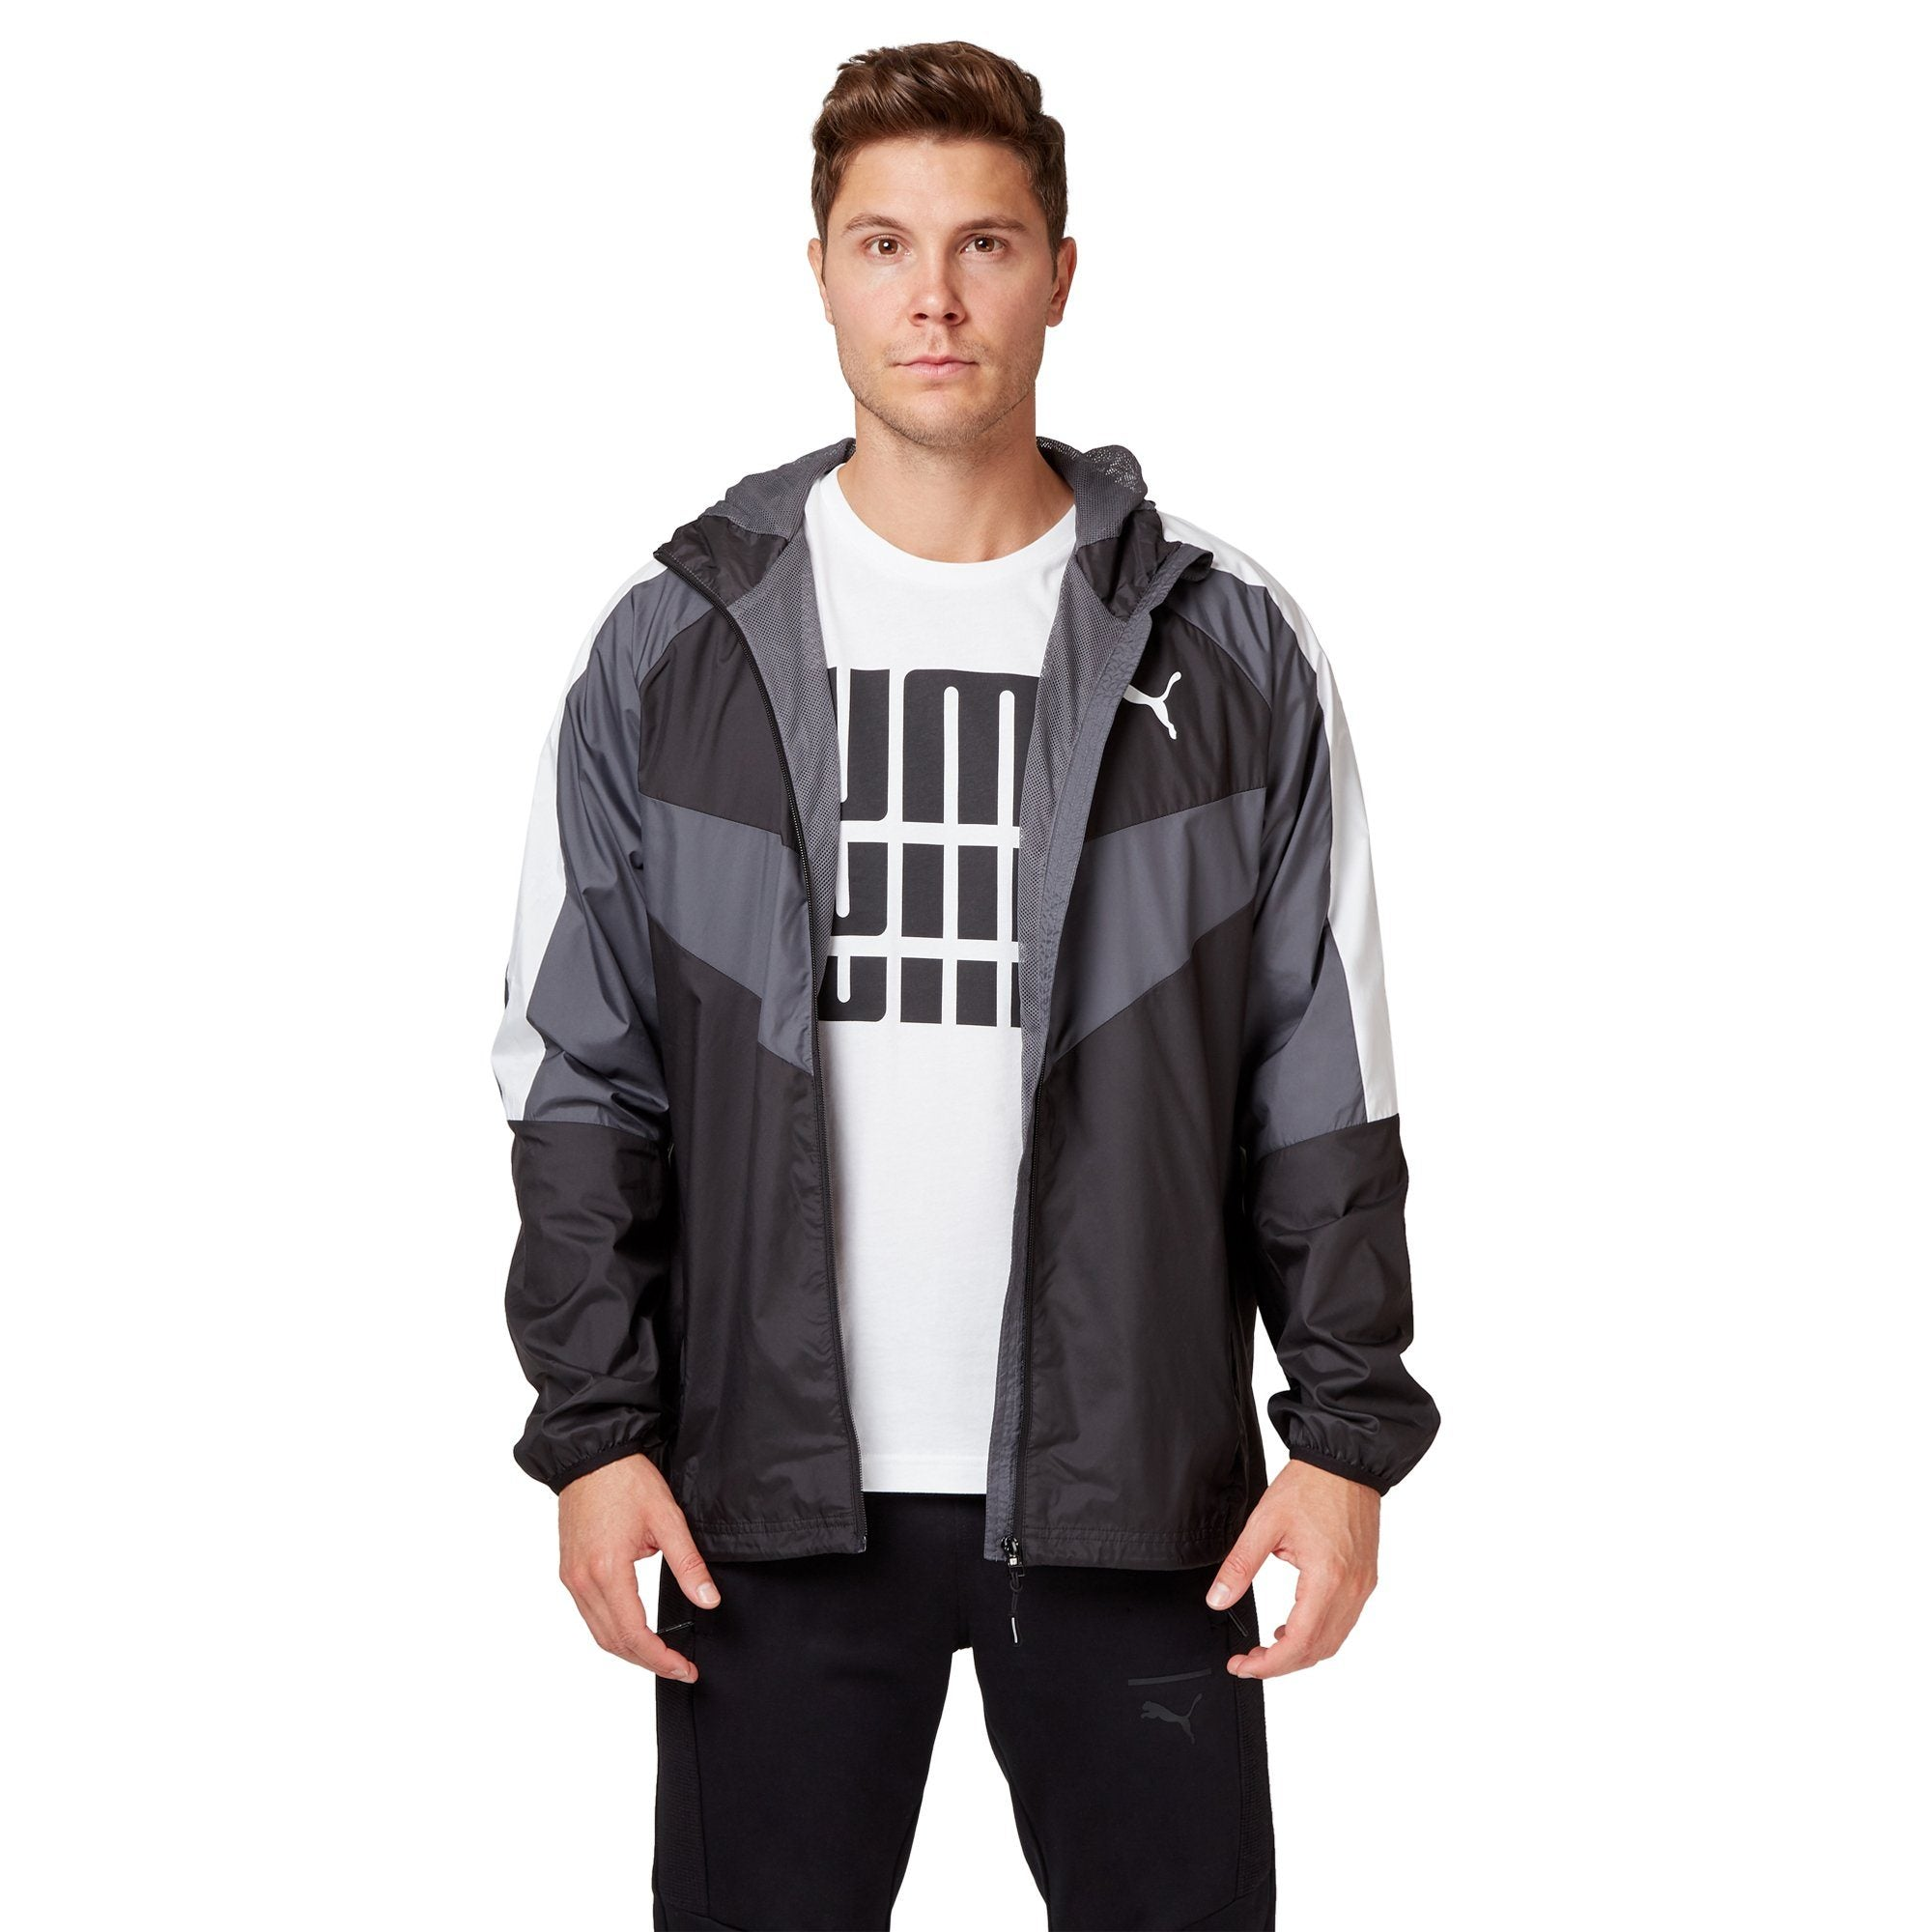 Puma Men's PWRVent Windbreaker Jacket - Black Apparel Puma  (2122605854779)